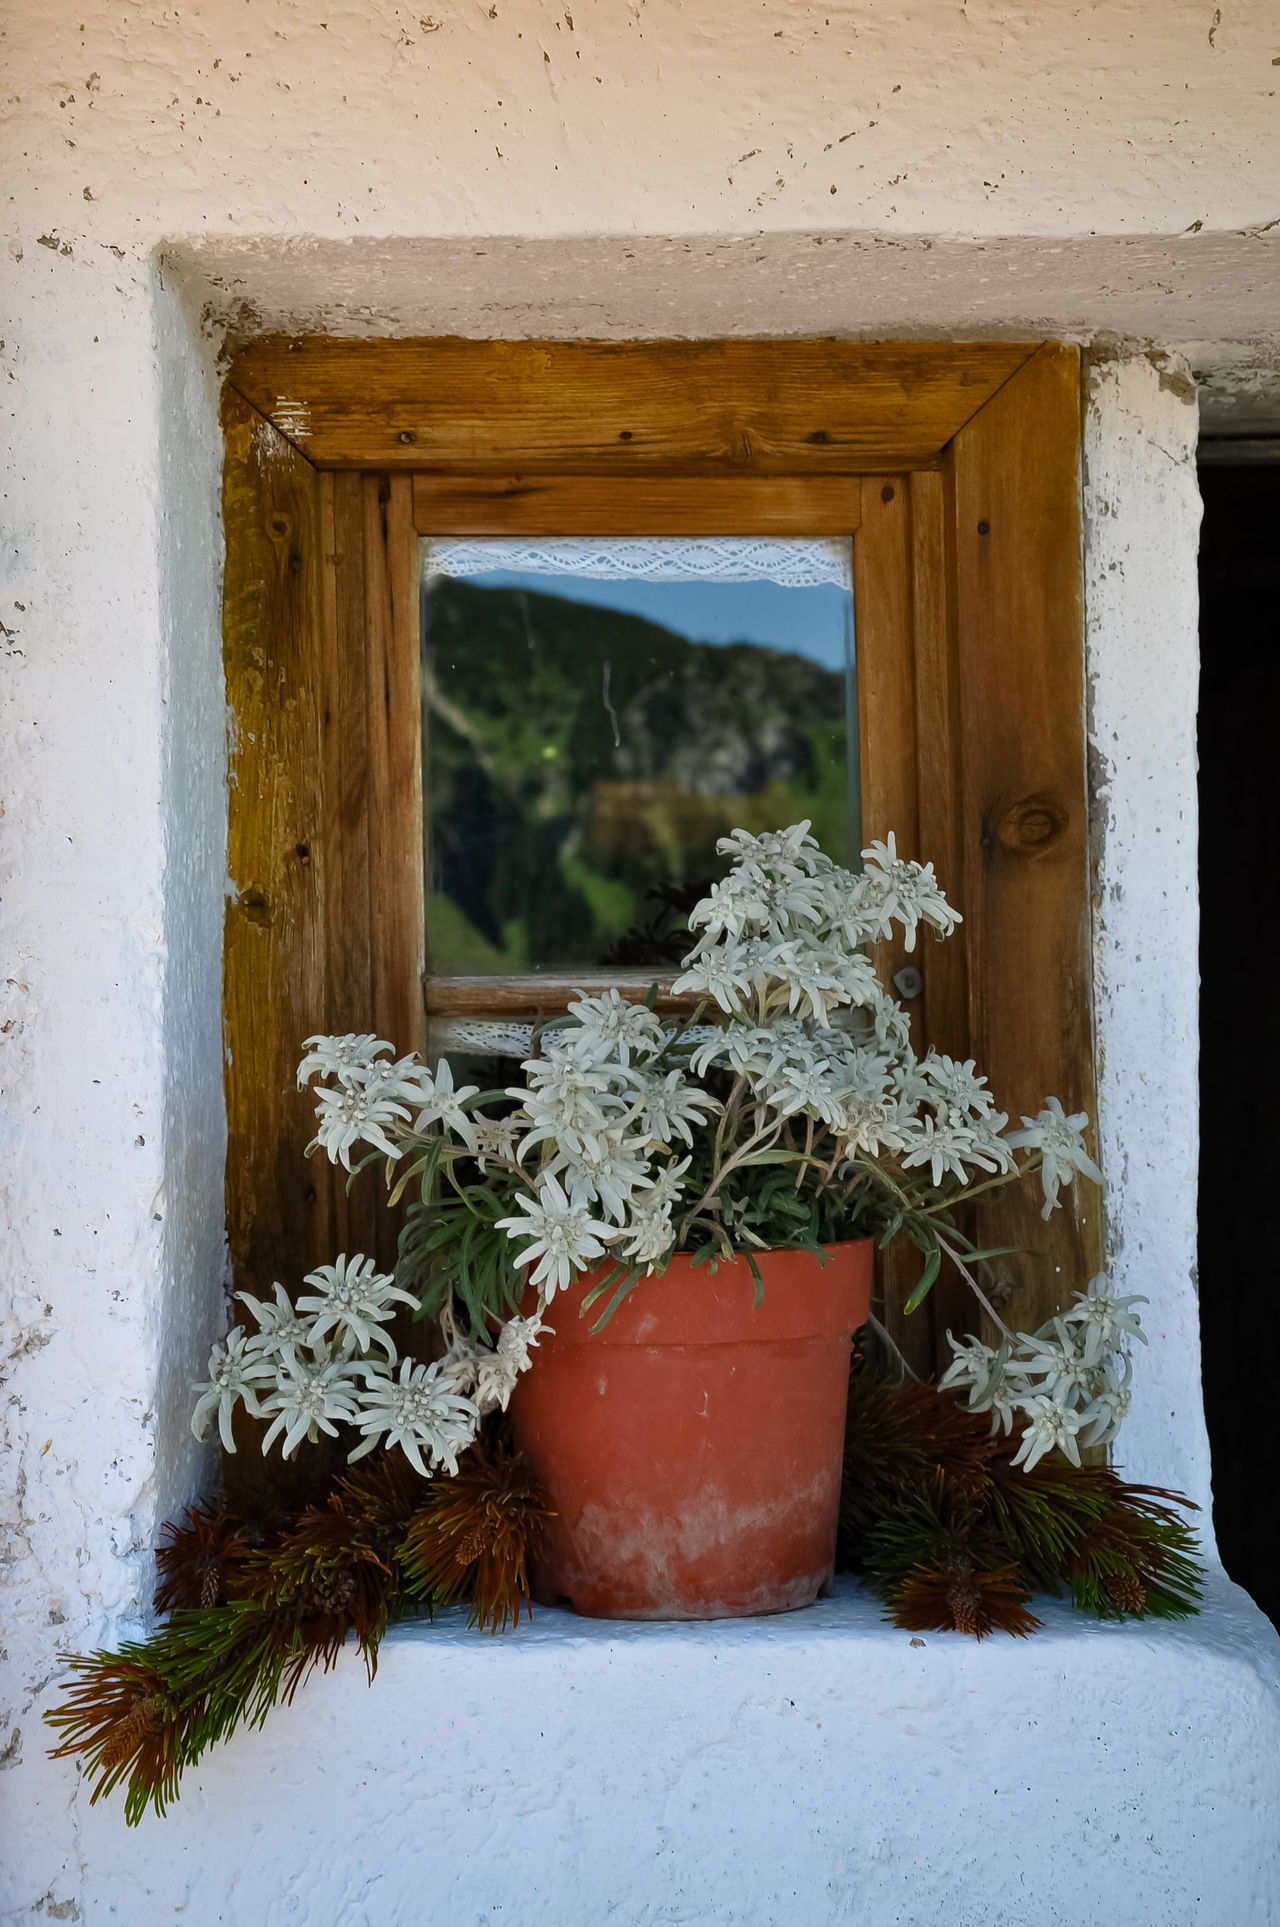 Architecture Built Structure Close-up Day Flower Flower Edelweiß Freshness House Nature No People Old House In The Mountains Outdoors Plant Reflection In The Window Window